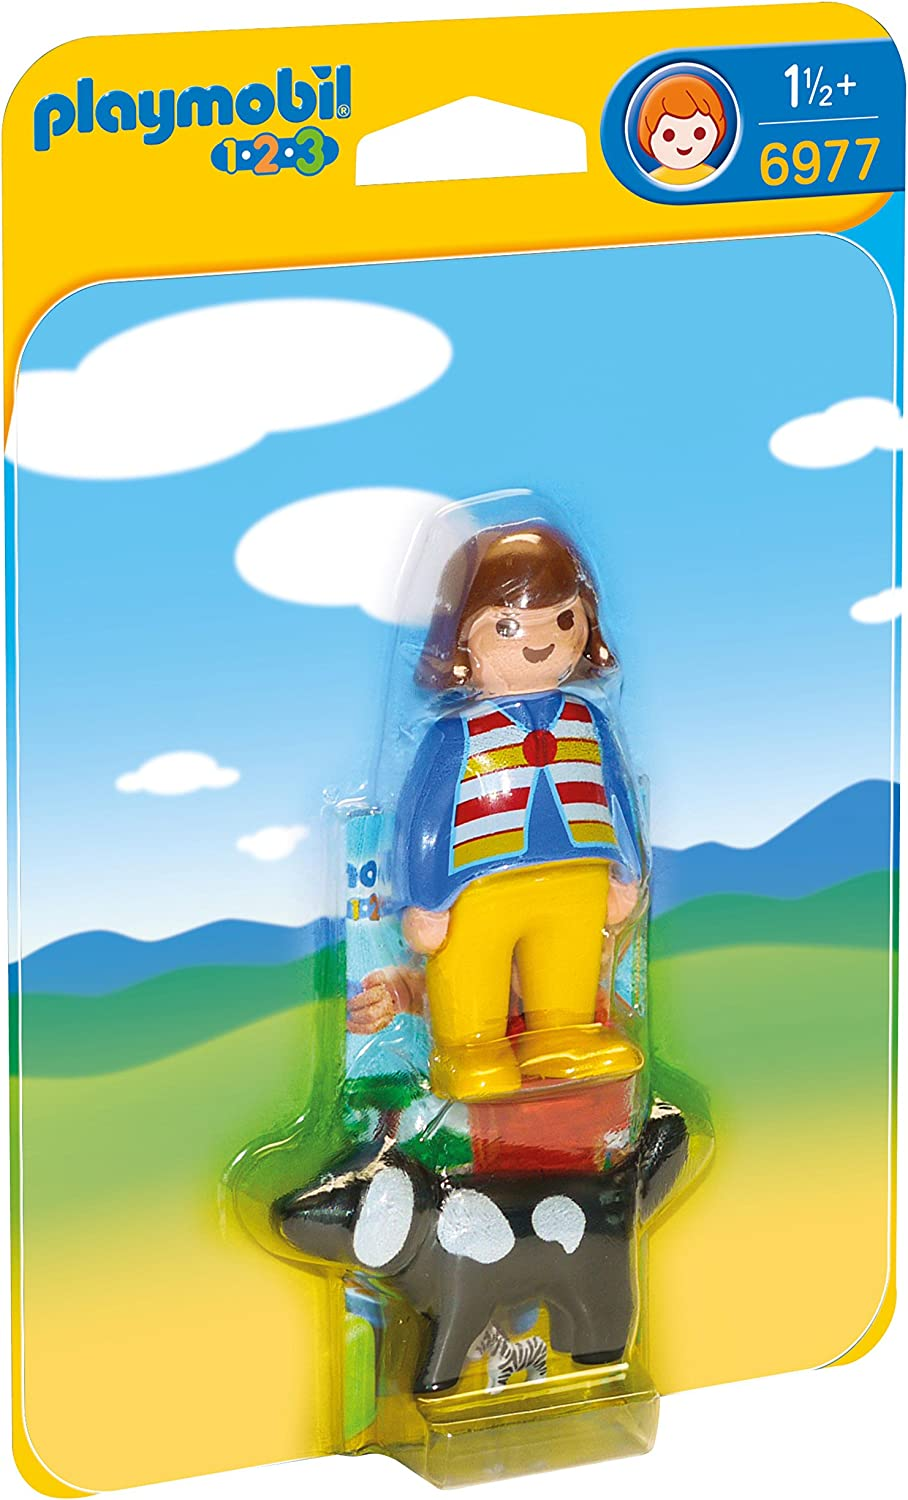 Playmobil.partes.Lote 2 cabezas.Mujer